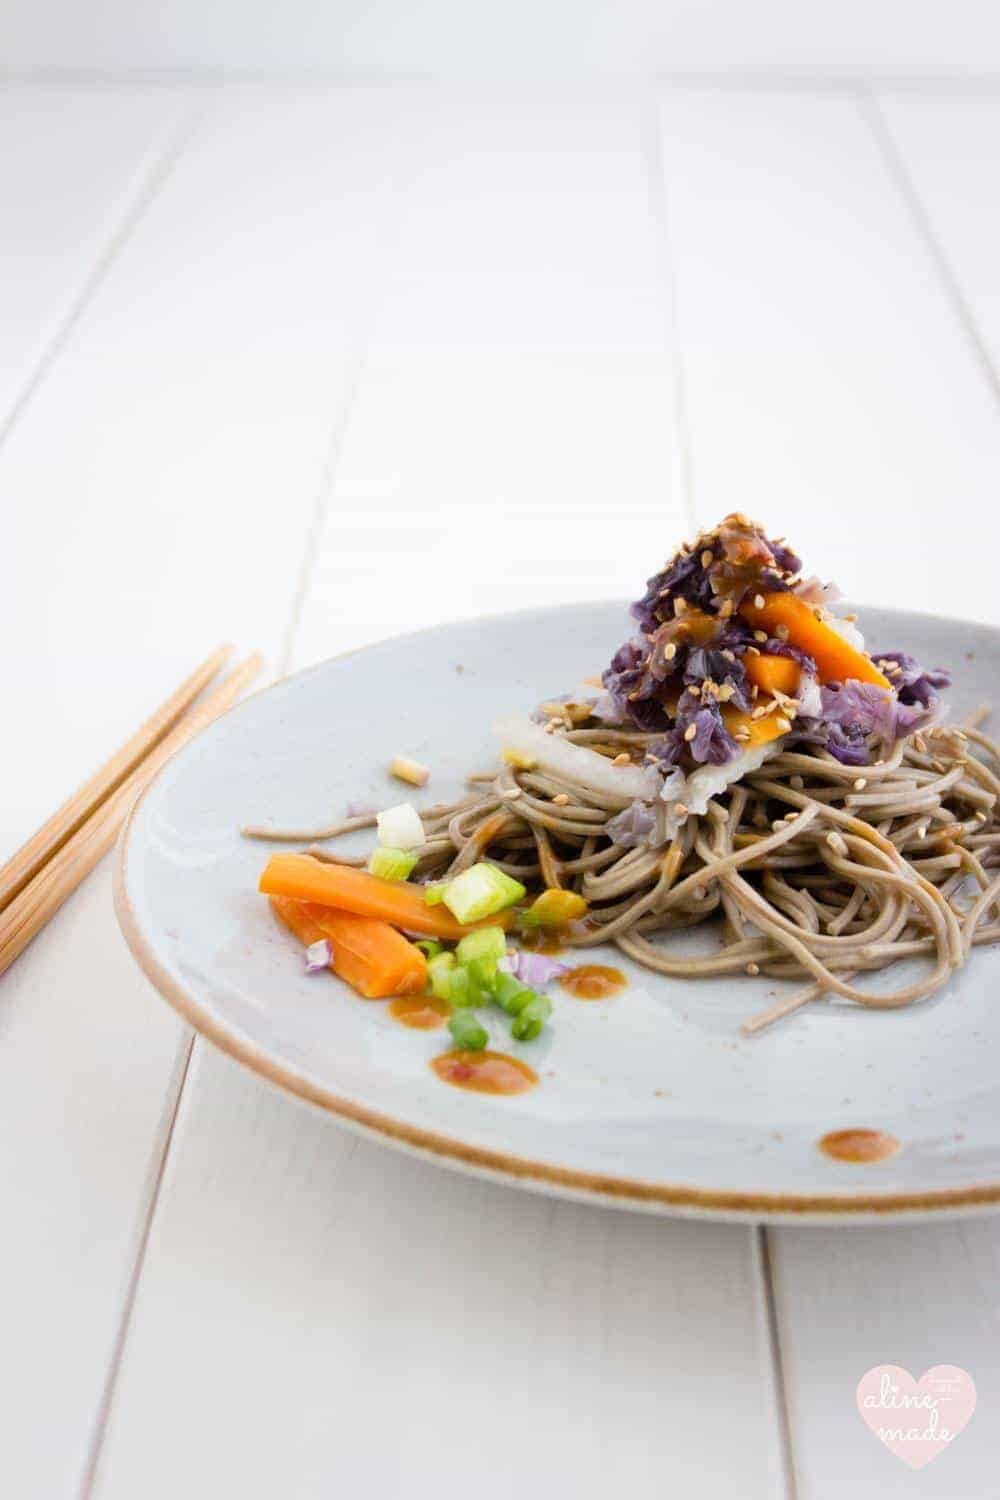 Veggie Soba Noodles with Miso Sauce served on a blue plate